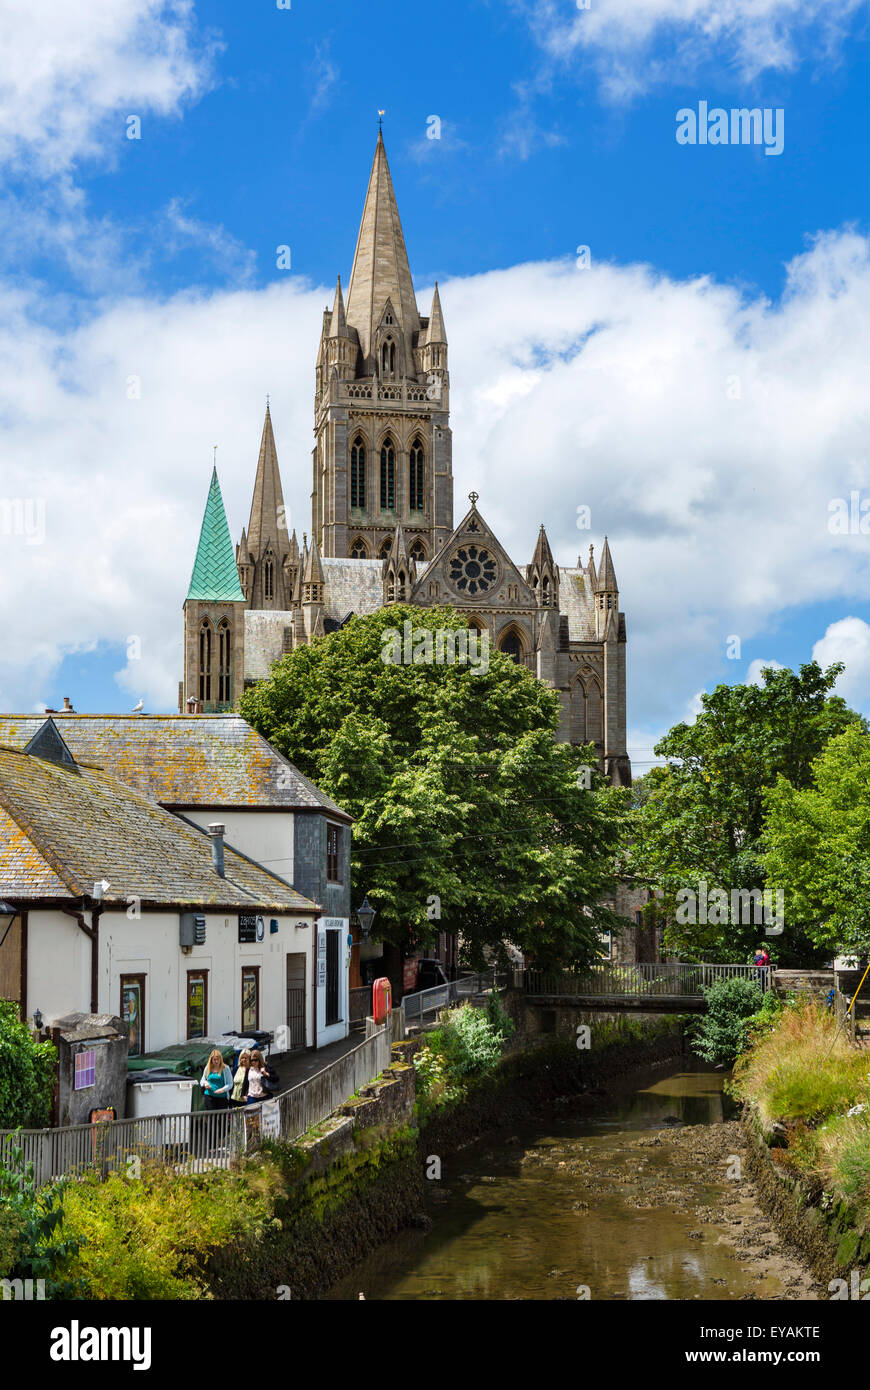 The Cathedral and River Allen from New Bridge Street, Truro, Cornwall, England, UK - Stock Image